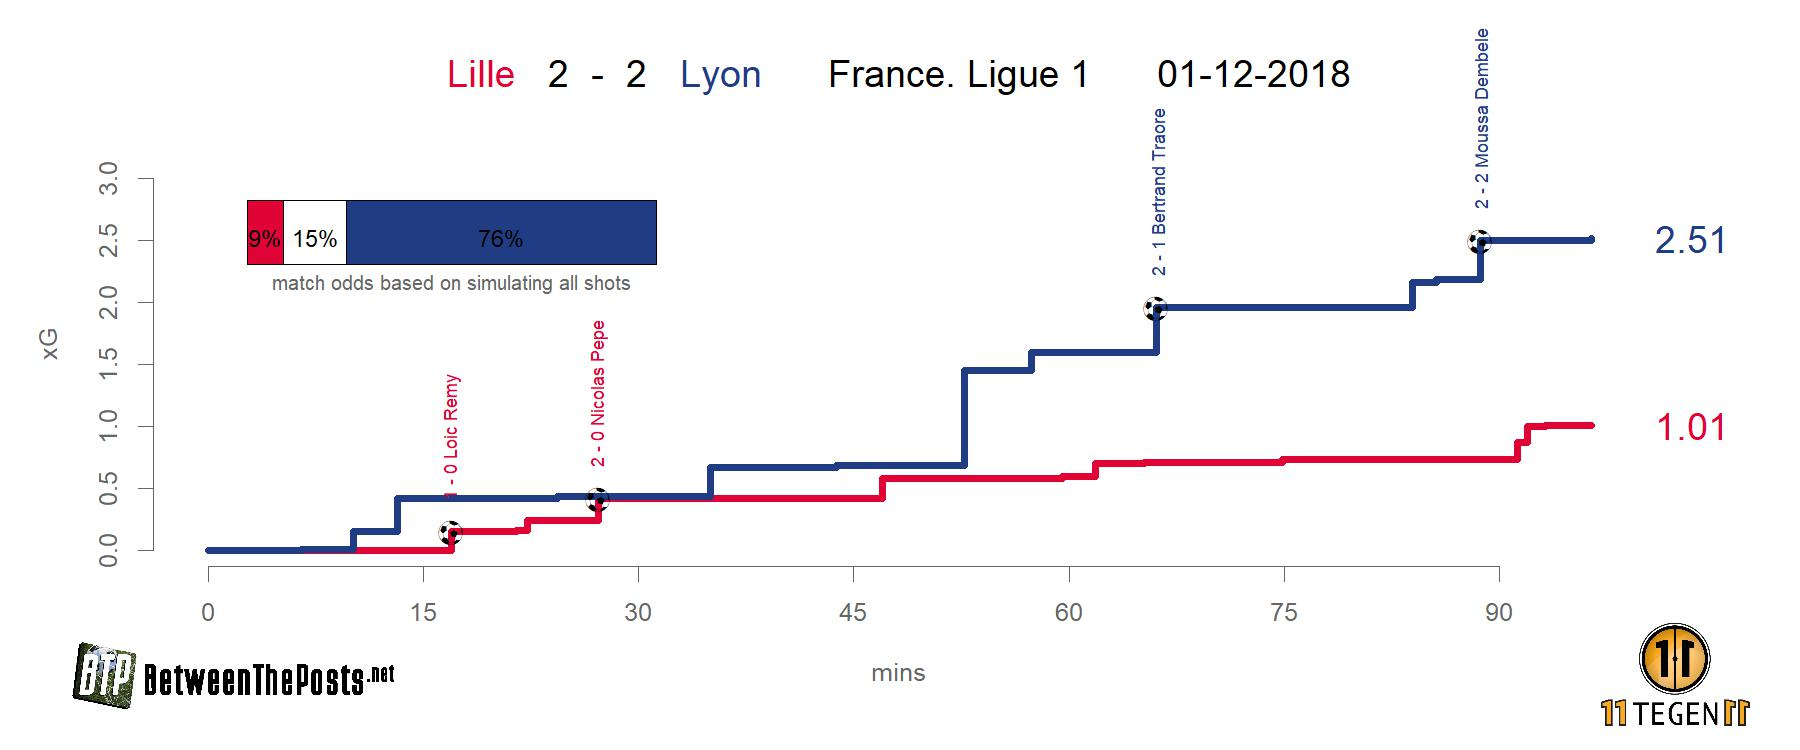 Expected goals plot Lille - Lyon 2-2 Ligue 1